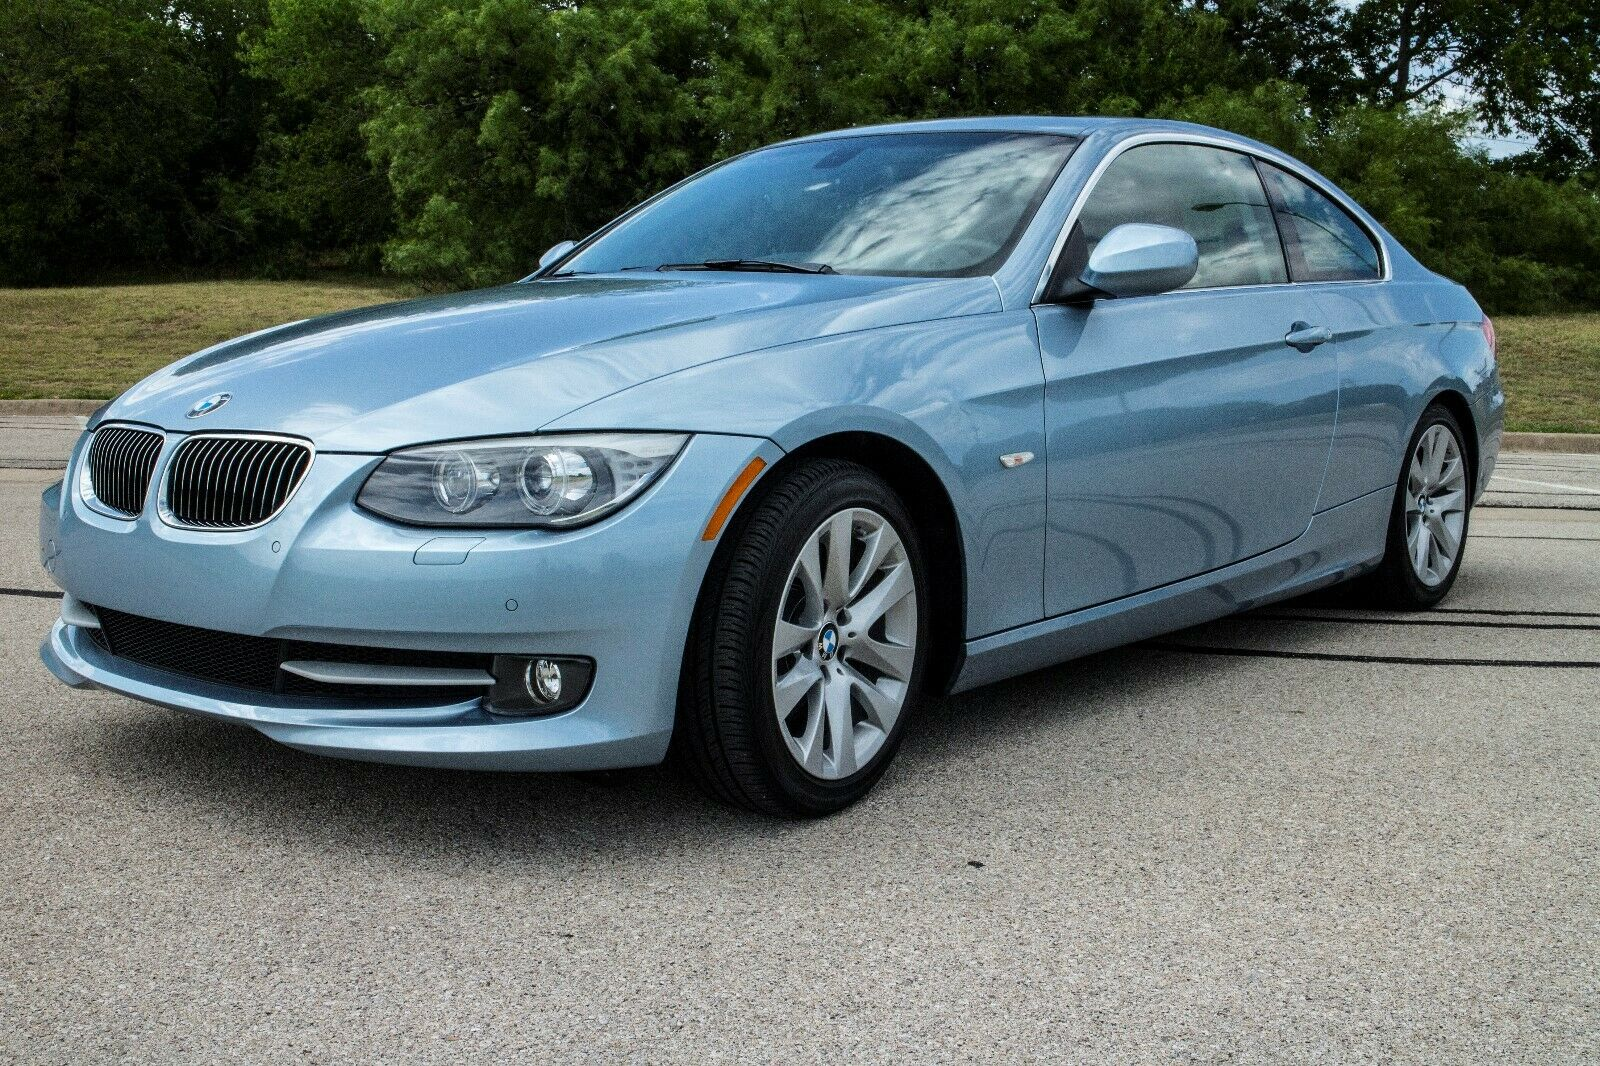 2013 Bmw 328i Coupe German Cars For Sale Blog